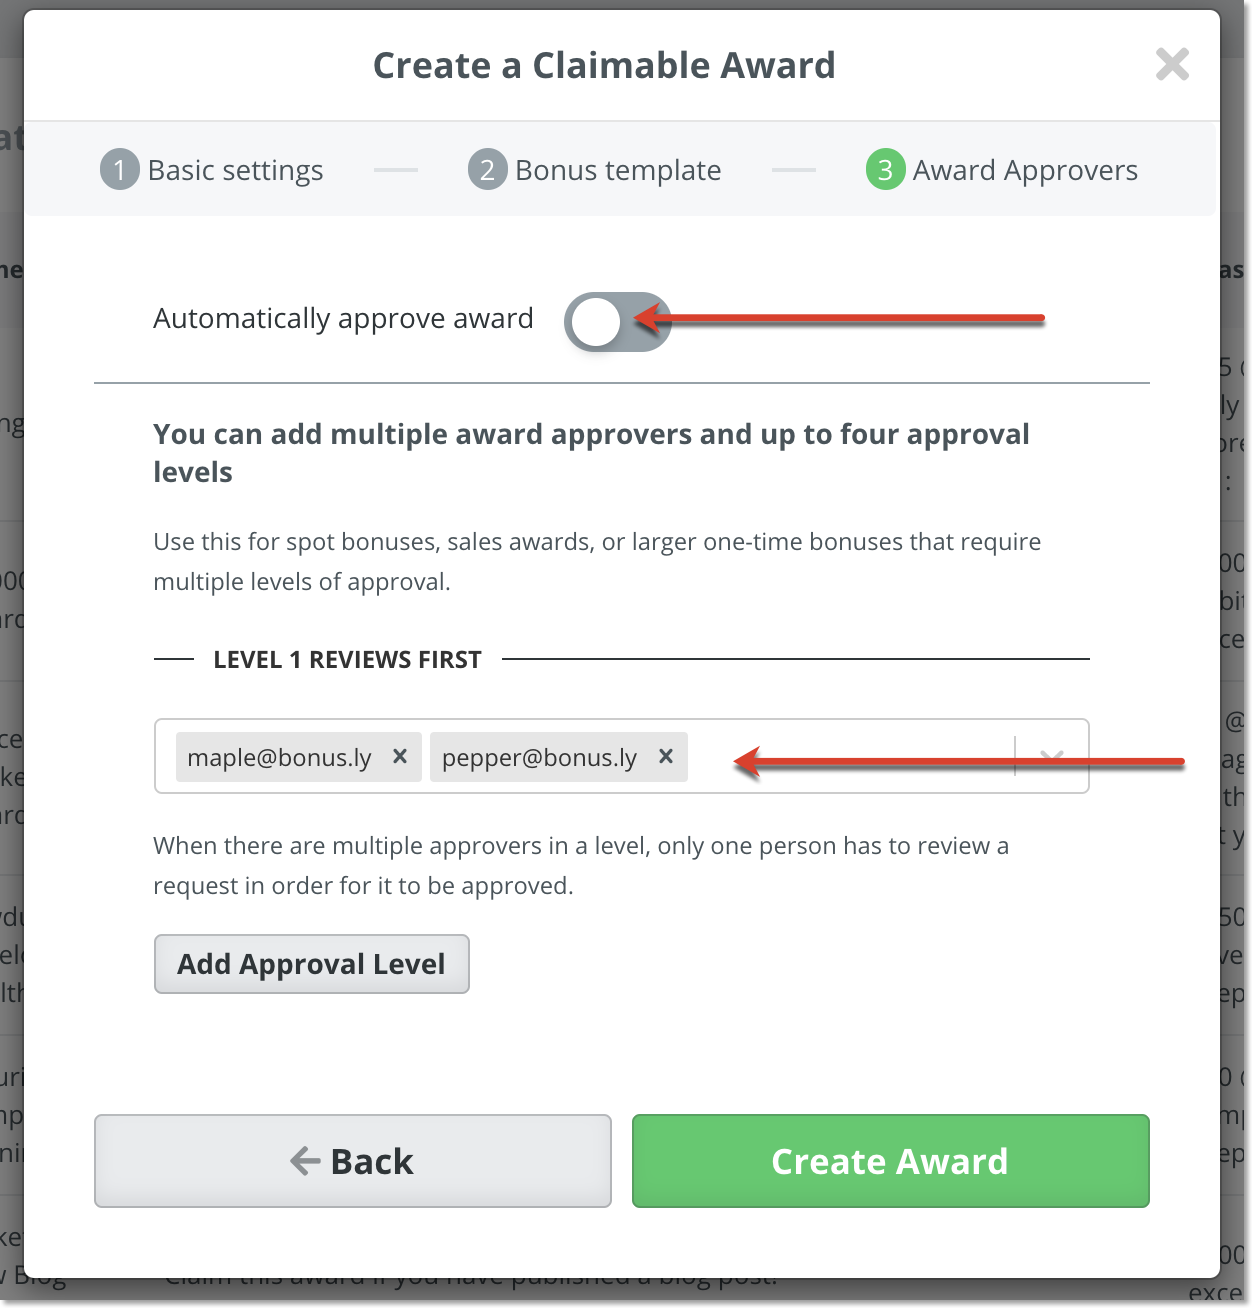 Third and final step to creating a claimable award, showing how to toggle the